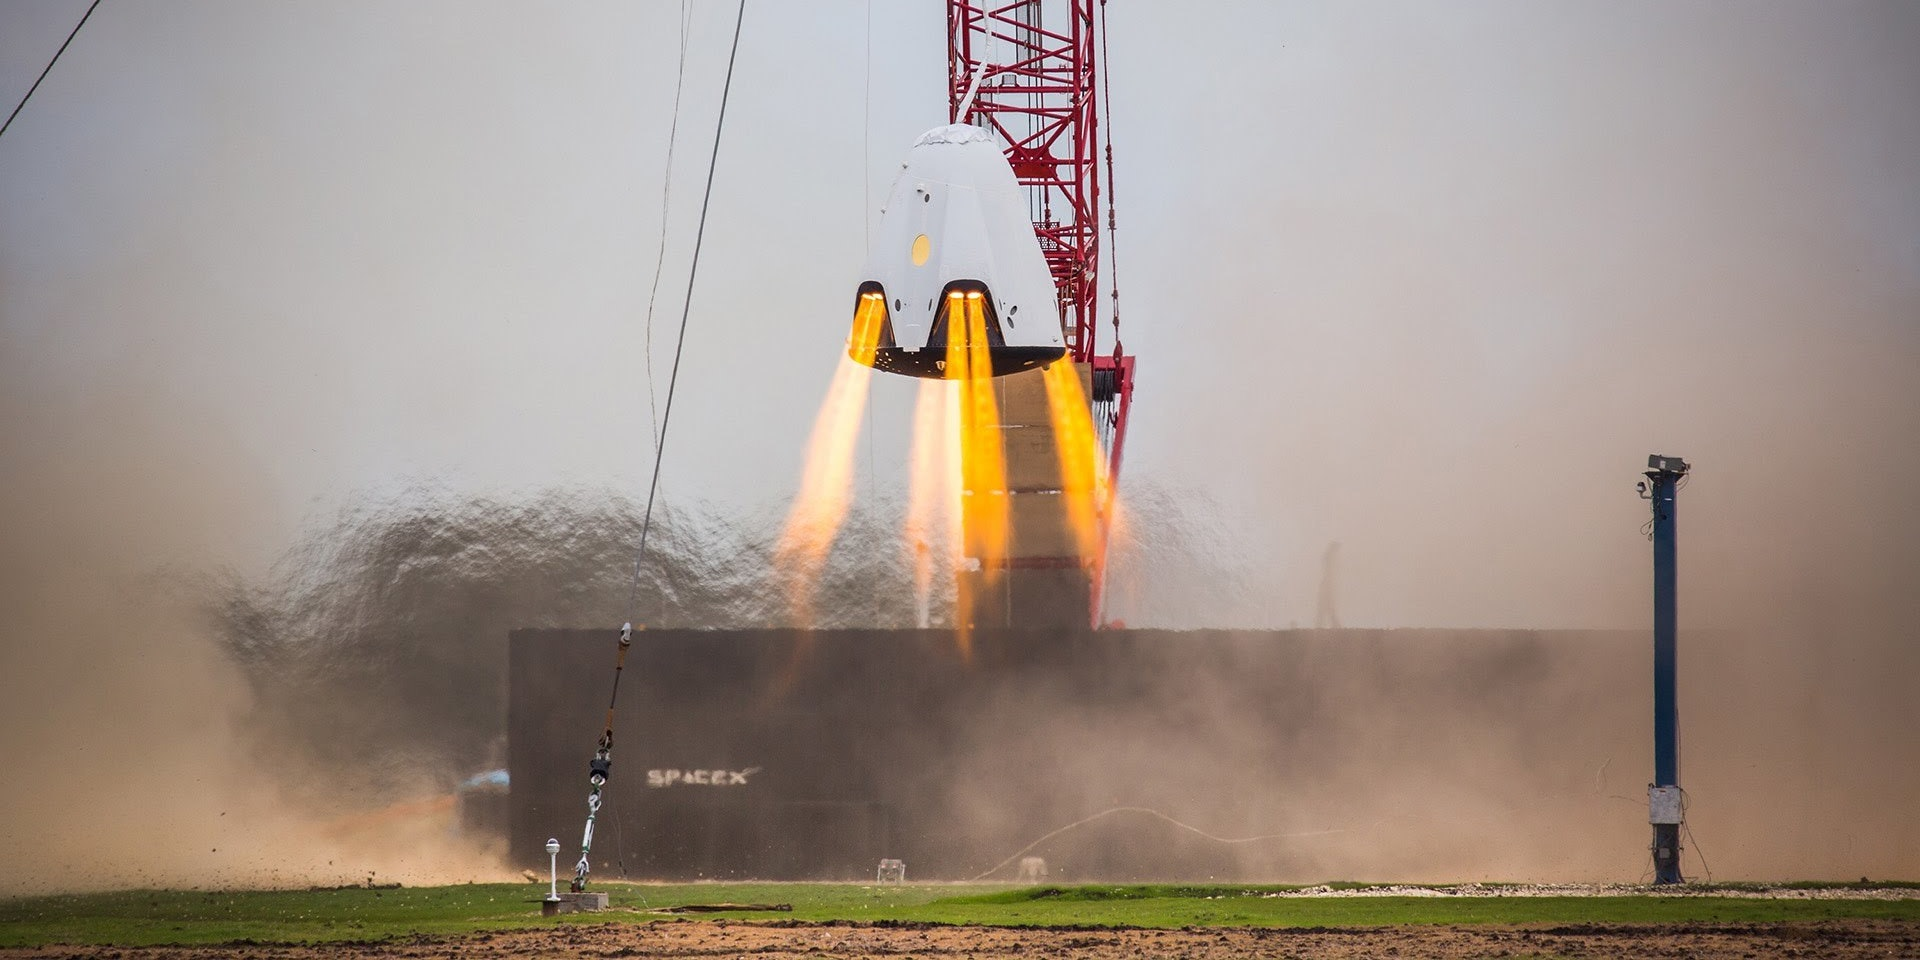 dragon 2 spacex